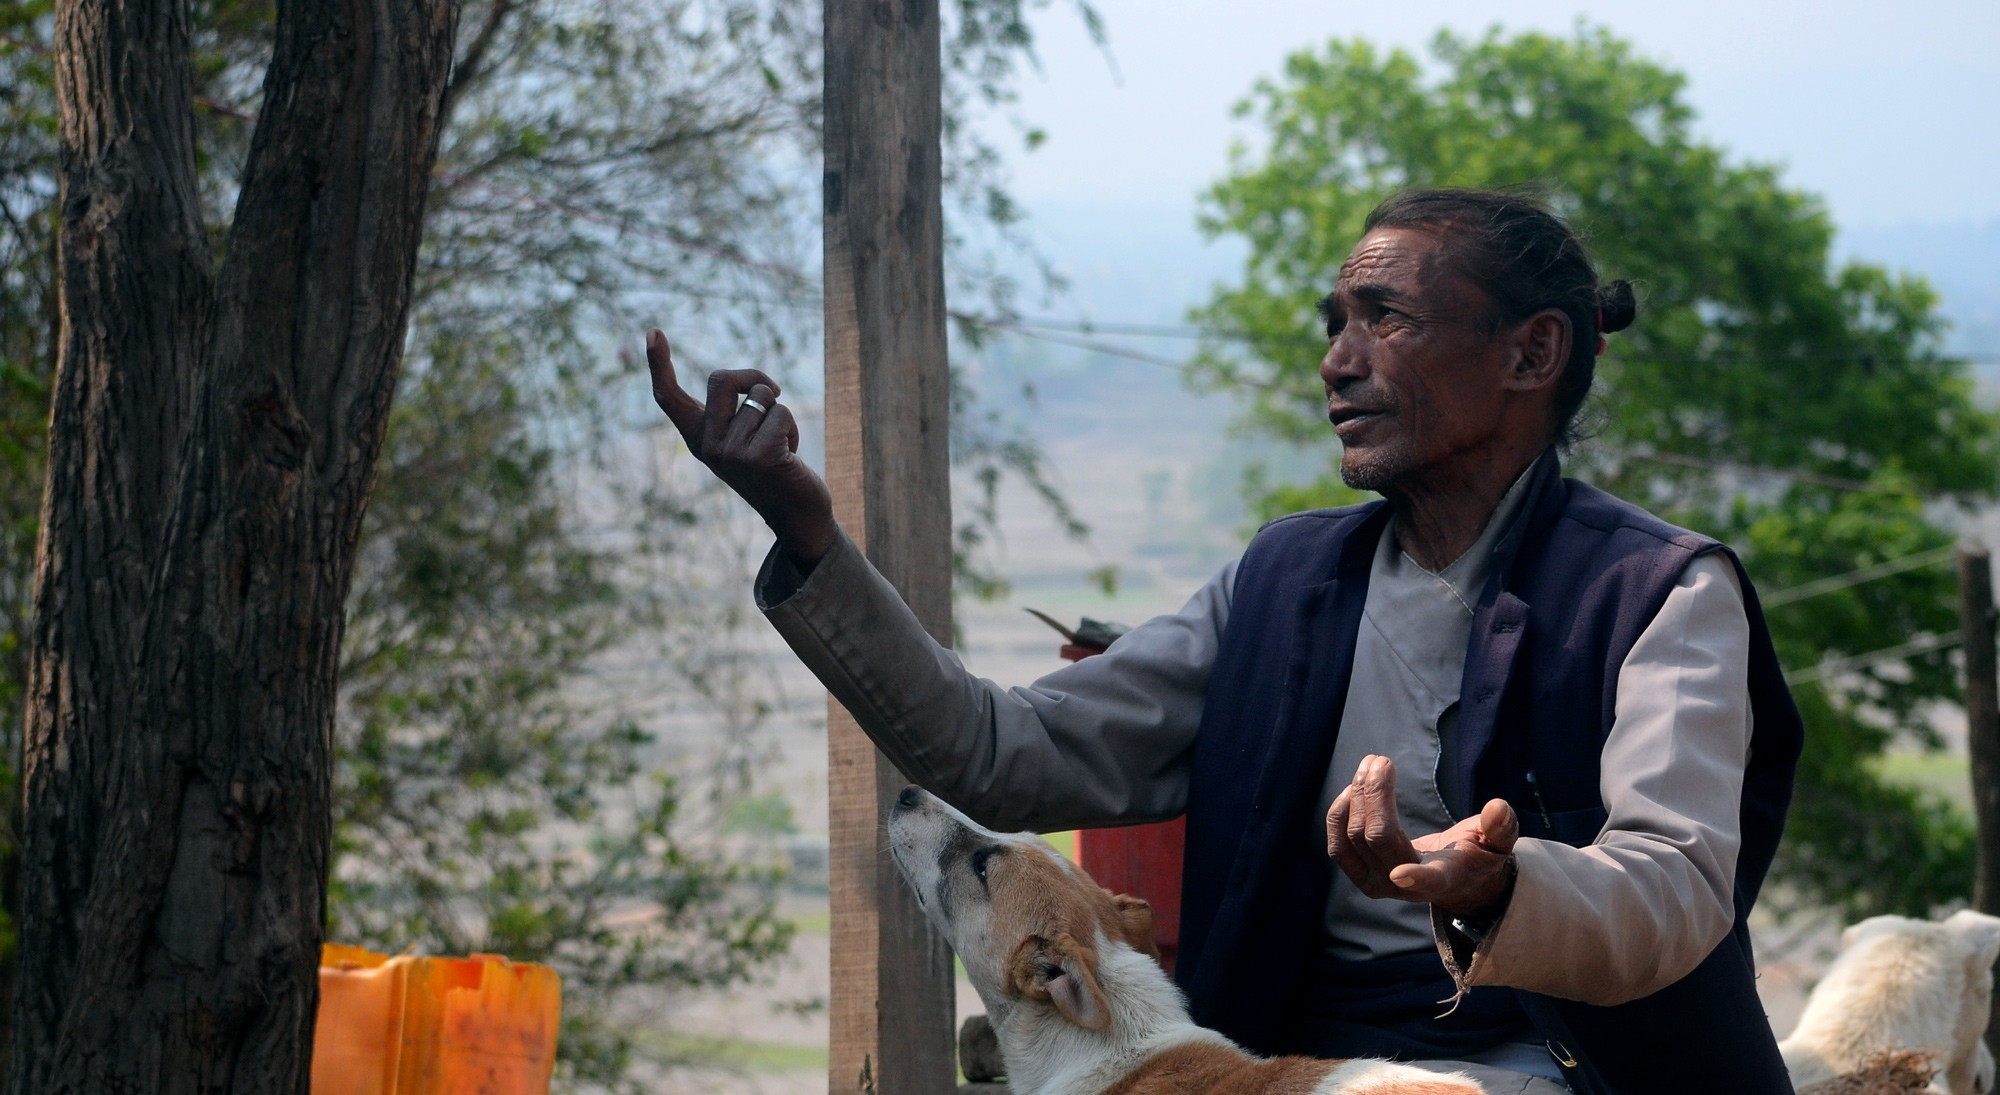 'I spent the last 300 rupees of my relief money on him'